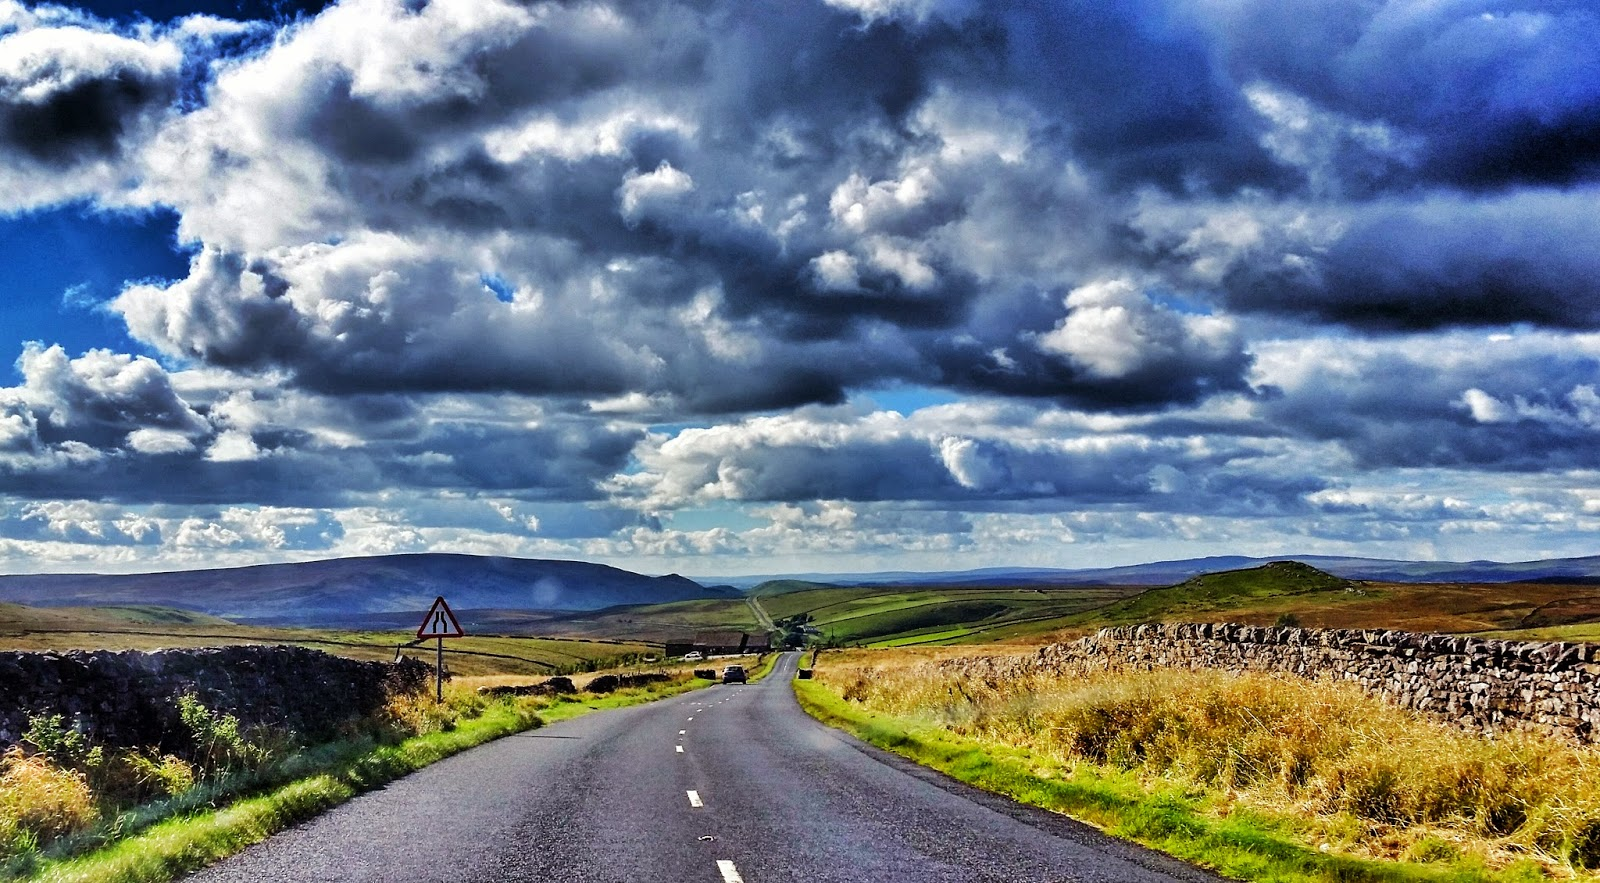 Yorkshire Dales roads